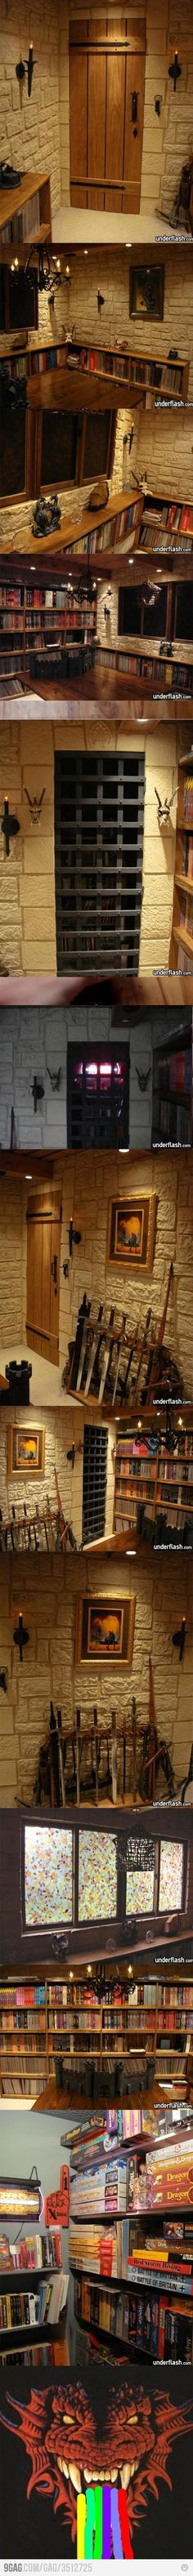 OMG This is the ultimate gaming room! Nerd Room, Nerd Cave, Dungeons And Dragons, Deco Gamer, Medieval, Geek Decor, Reading Room, Reading Games, Interior Exterior